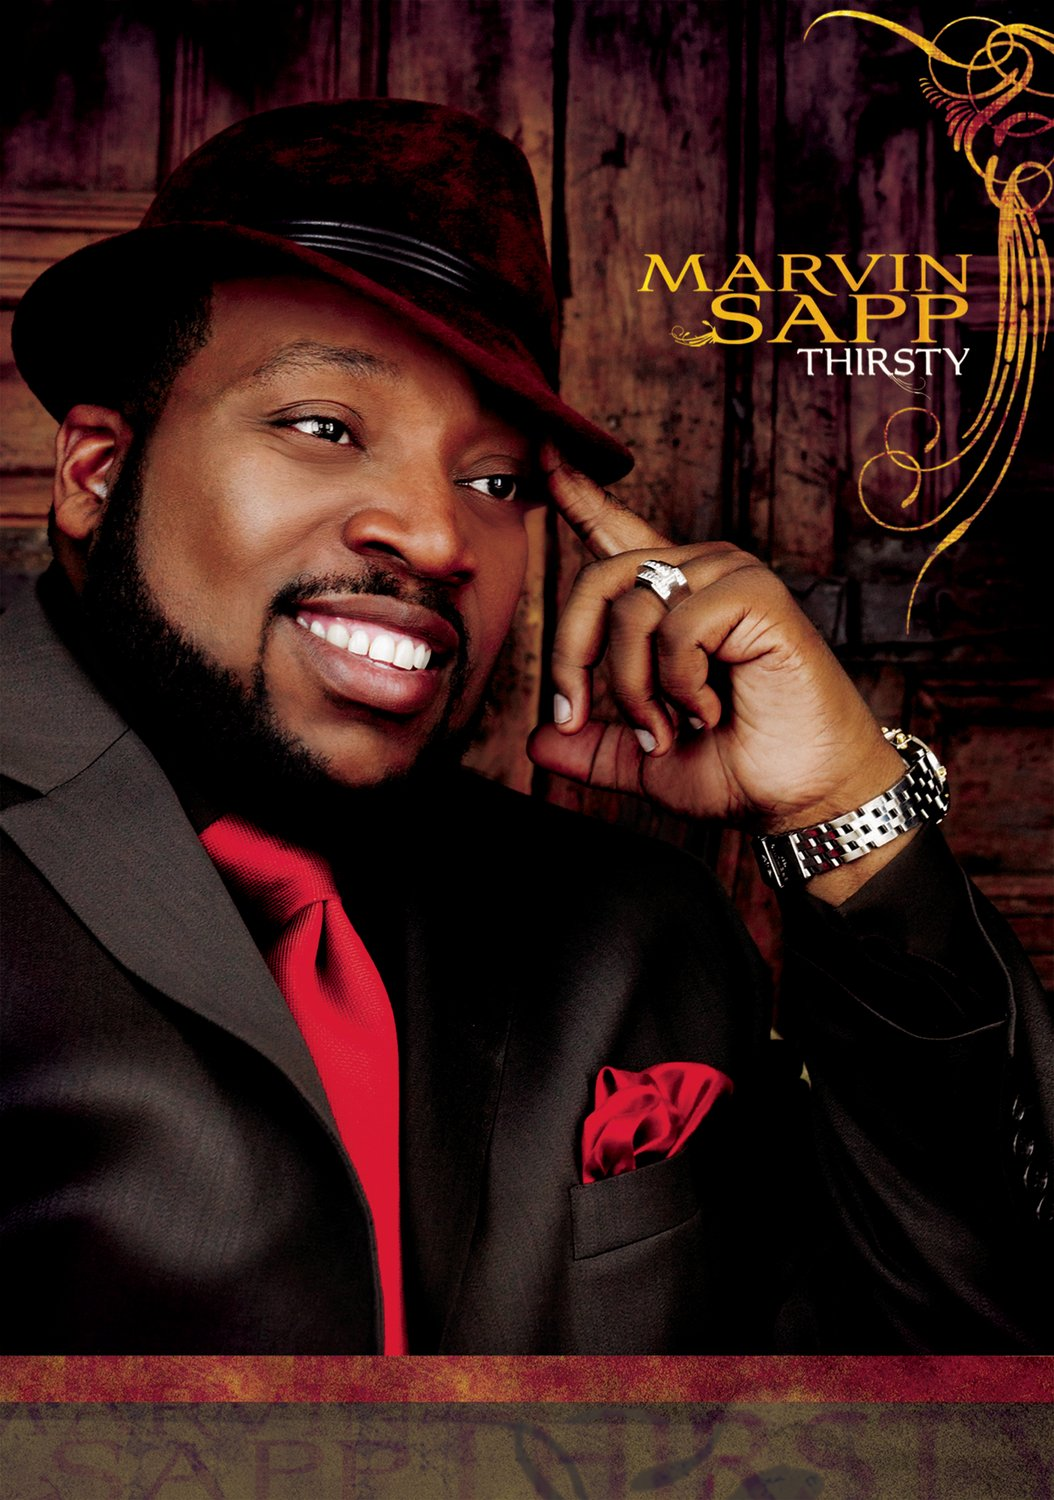 dvd marvin sapp thirsty